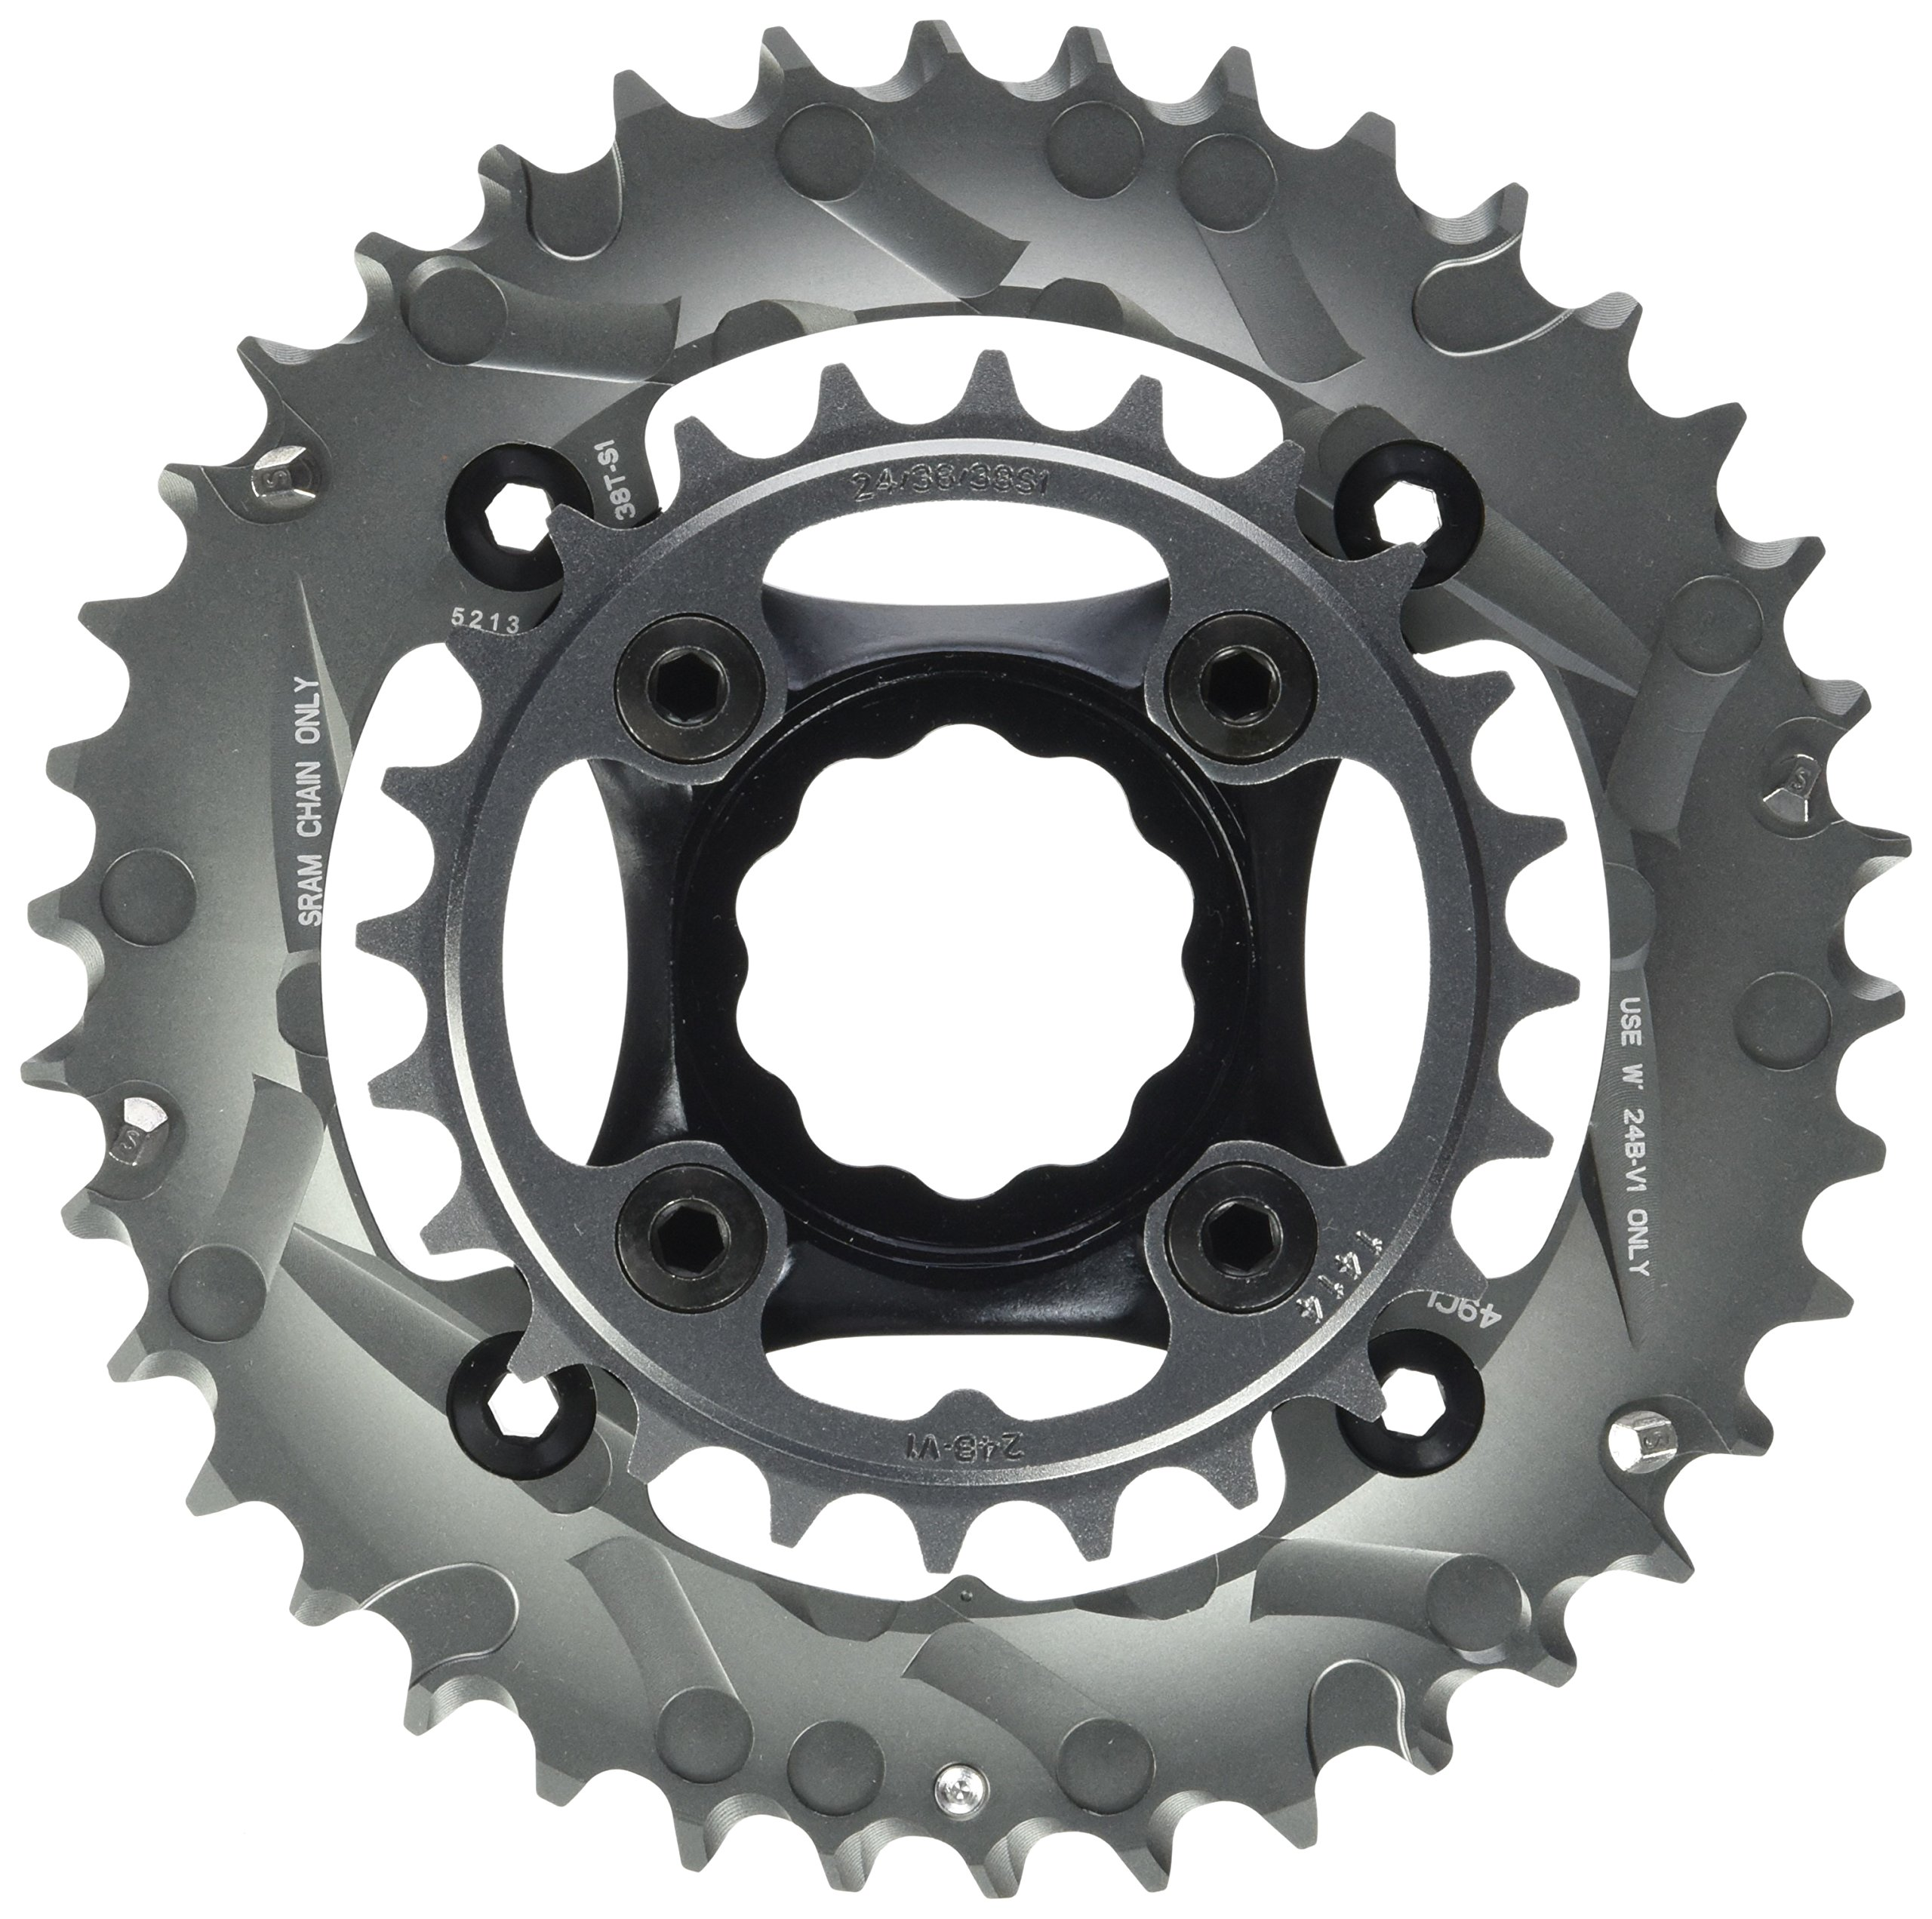 Truvativ Truvativ Crank 10-speed Chainring Set 38-24t with X9 Specialized GXP Spider 49 Chainline 104/64 BCD Chainrings [104 BCD] by Truvativ (Image #1)